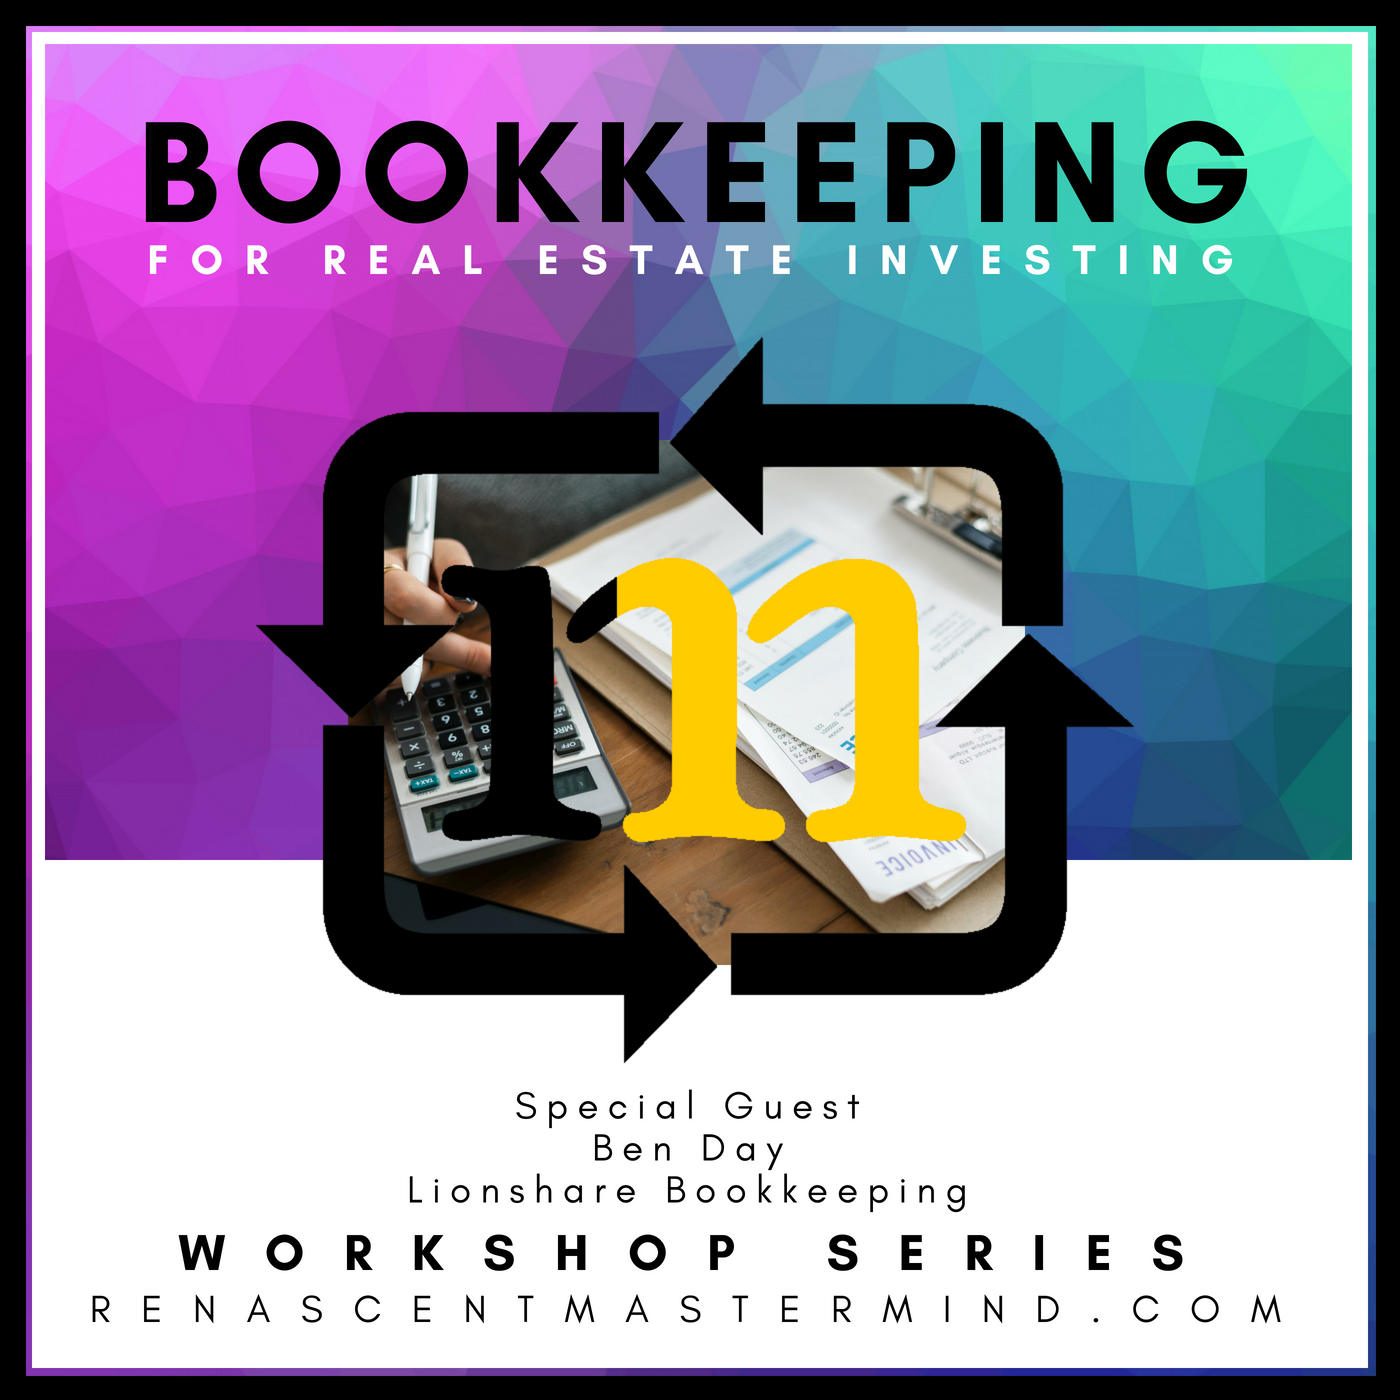 Copy of Bookkeeping & Accounting | Workshop Series  with special guest experts Ben Day with Lionshare Bookkeeping